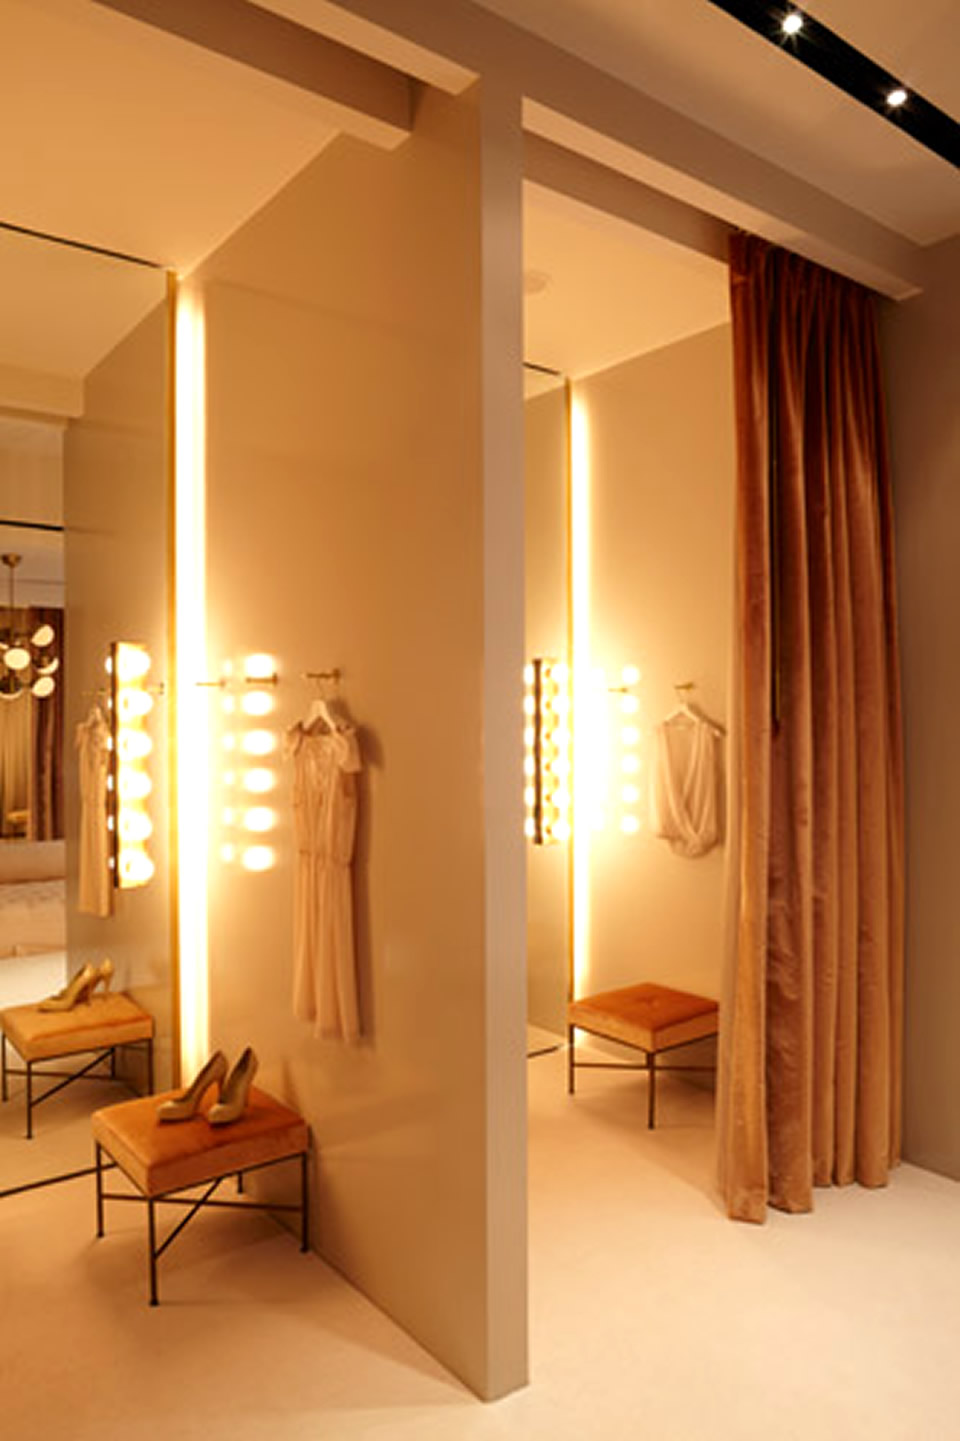 Fitting Room Designs For Retail: Crying In The Dressing Room: Tips To Build A Perfect